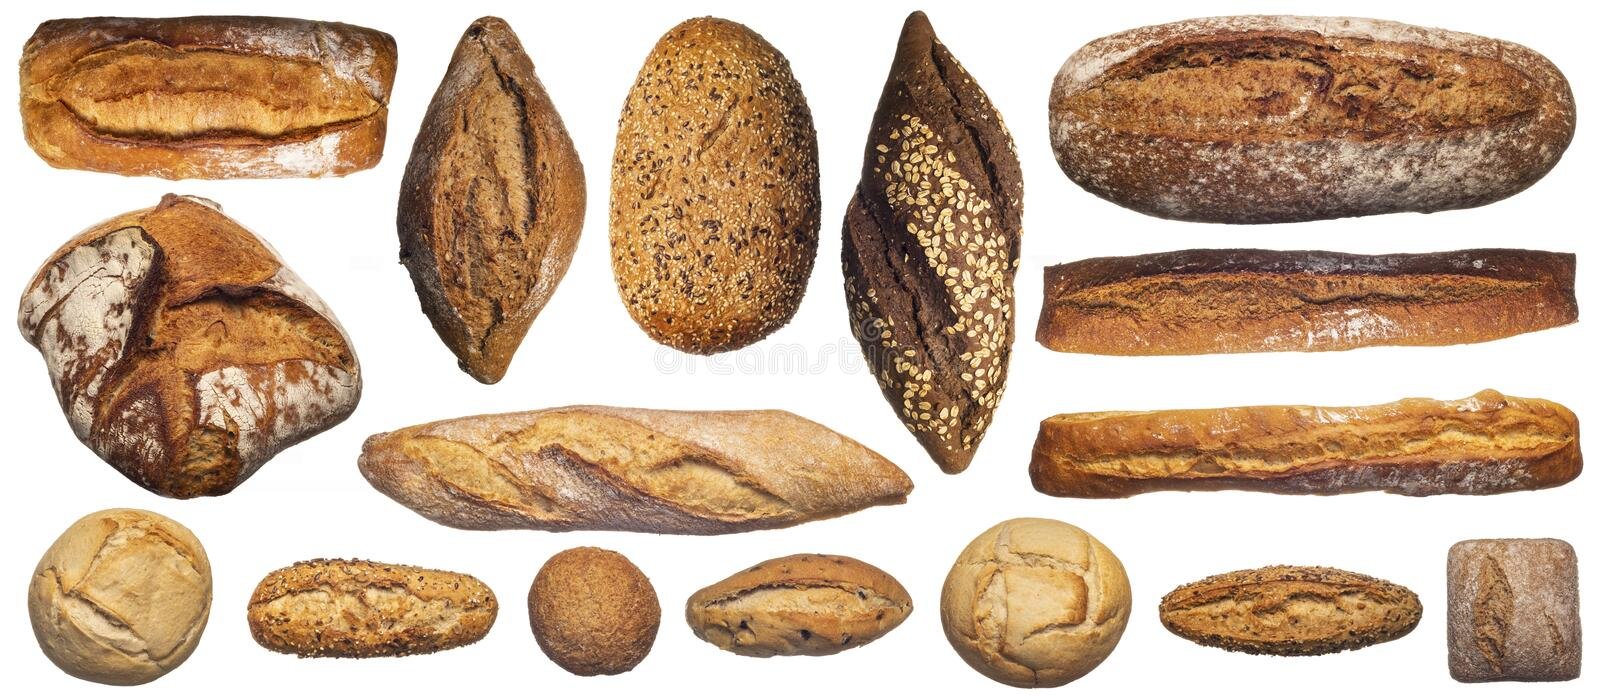 Set of various bread loaves isolated on white royalty free stock photos